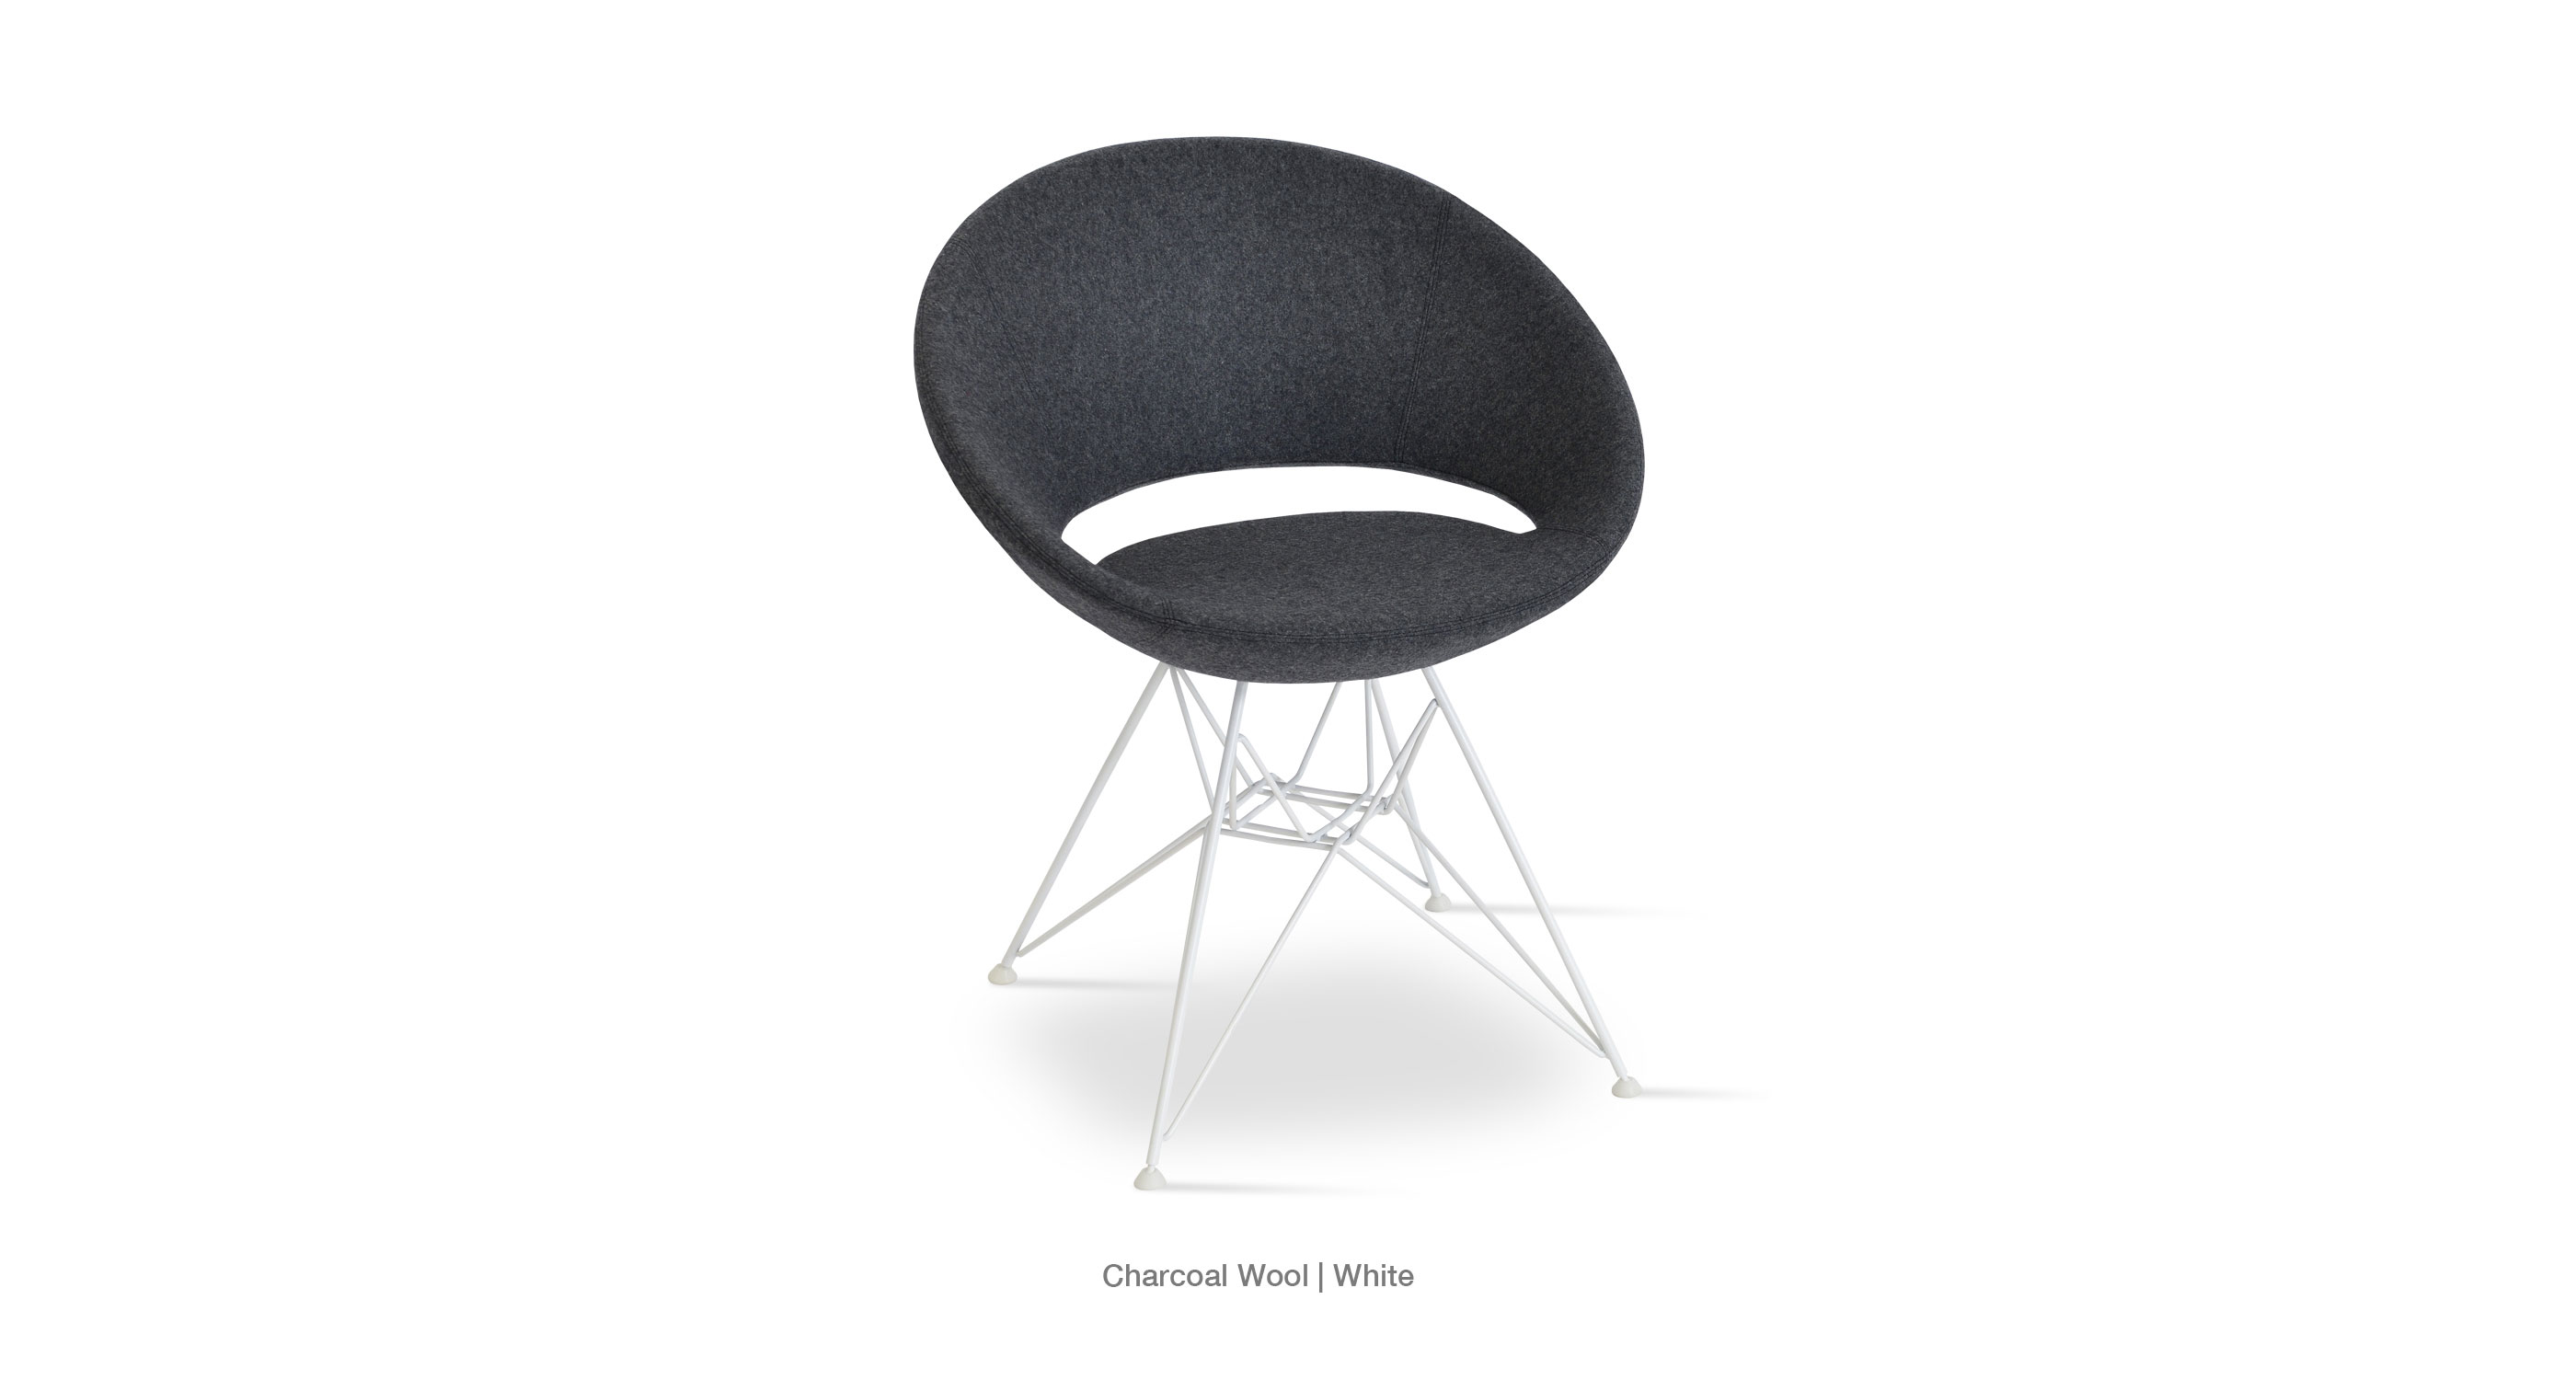 Crescent Tower Charcoal Wool White Base